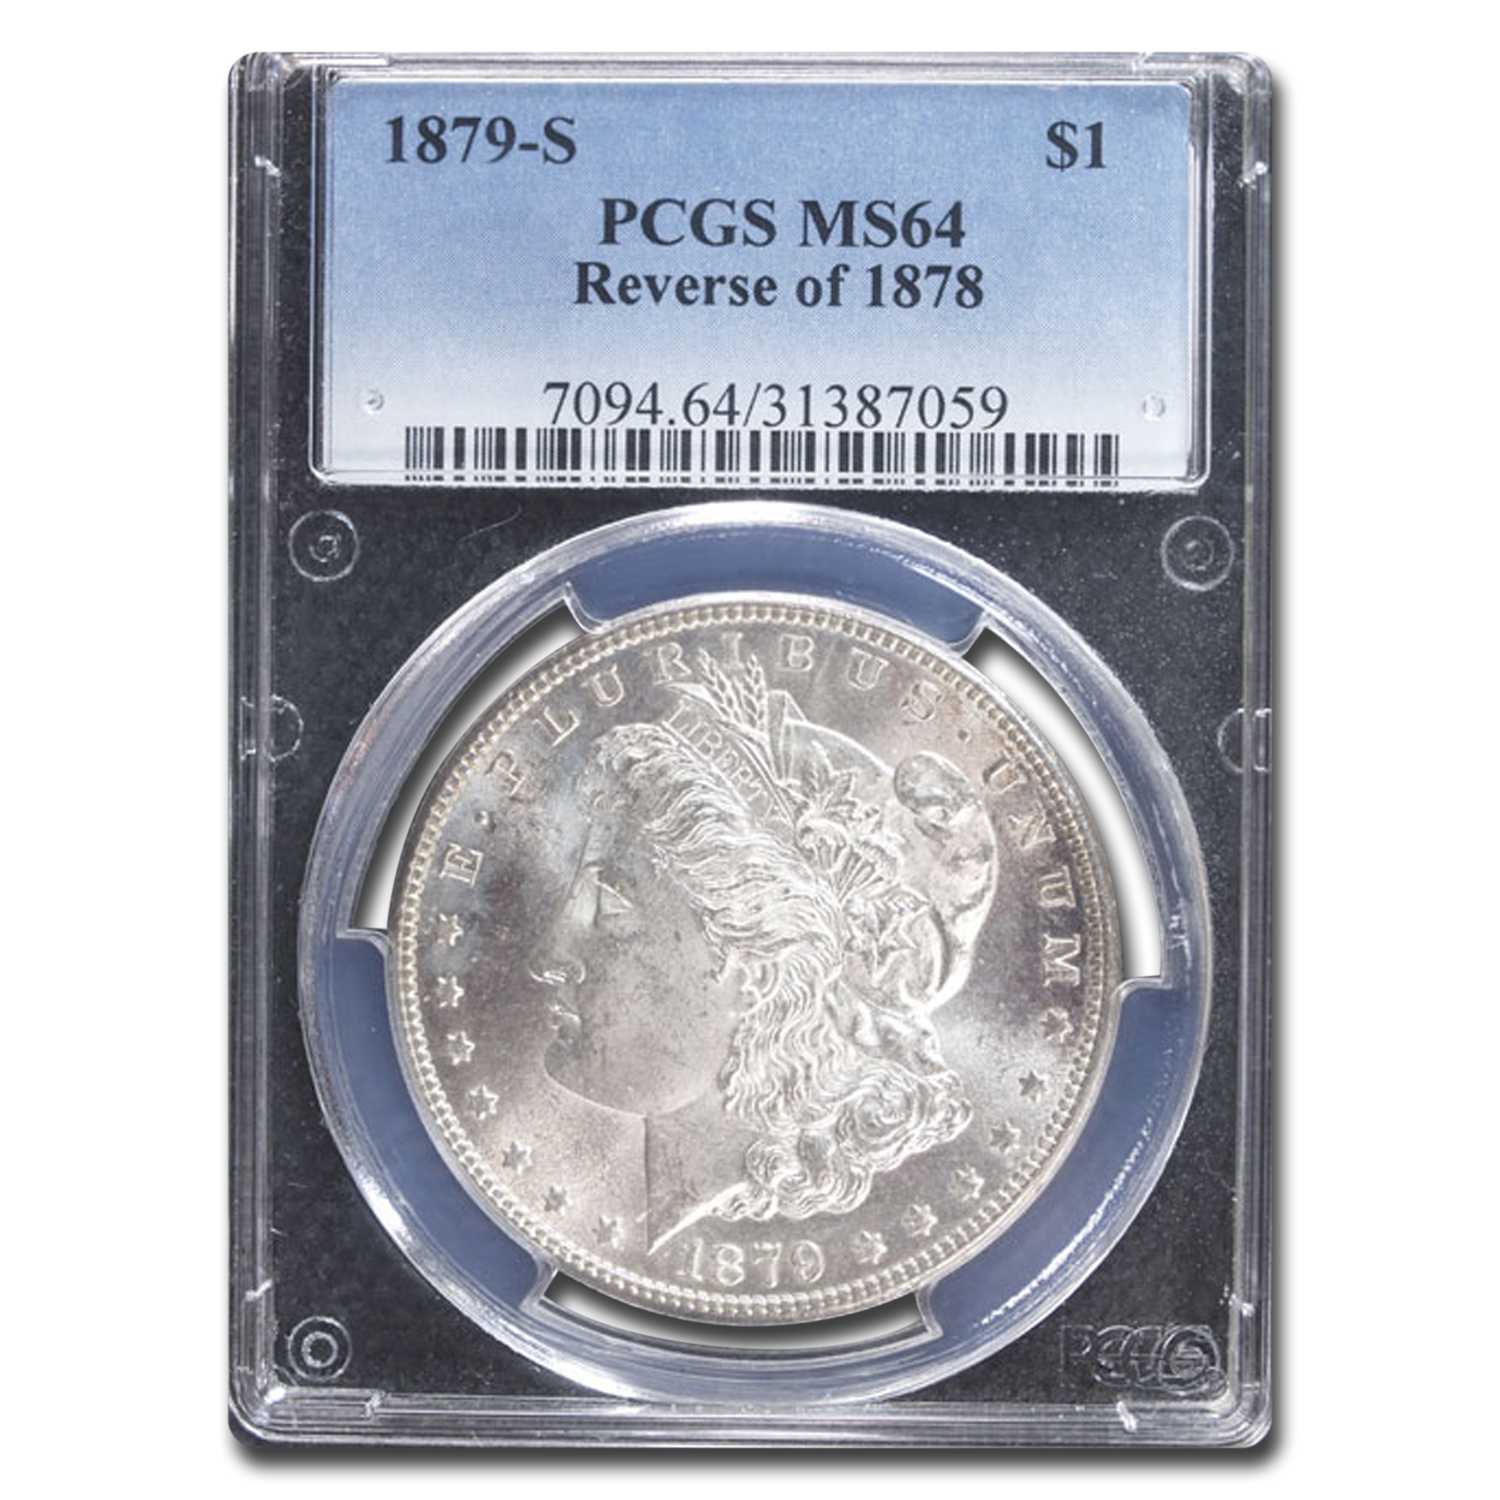 1879-S Morgan Dollar Rev of 1878 MS-64 PCGS